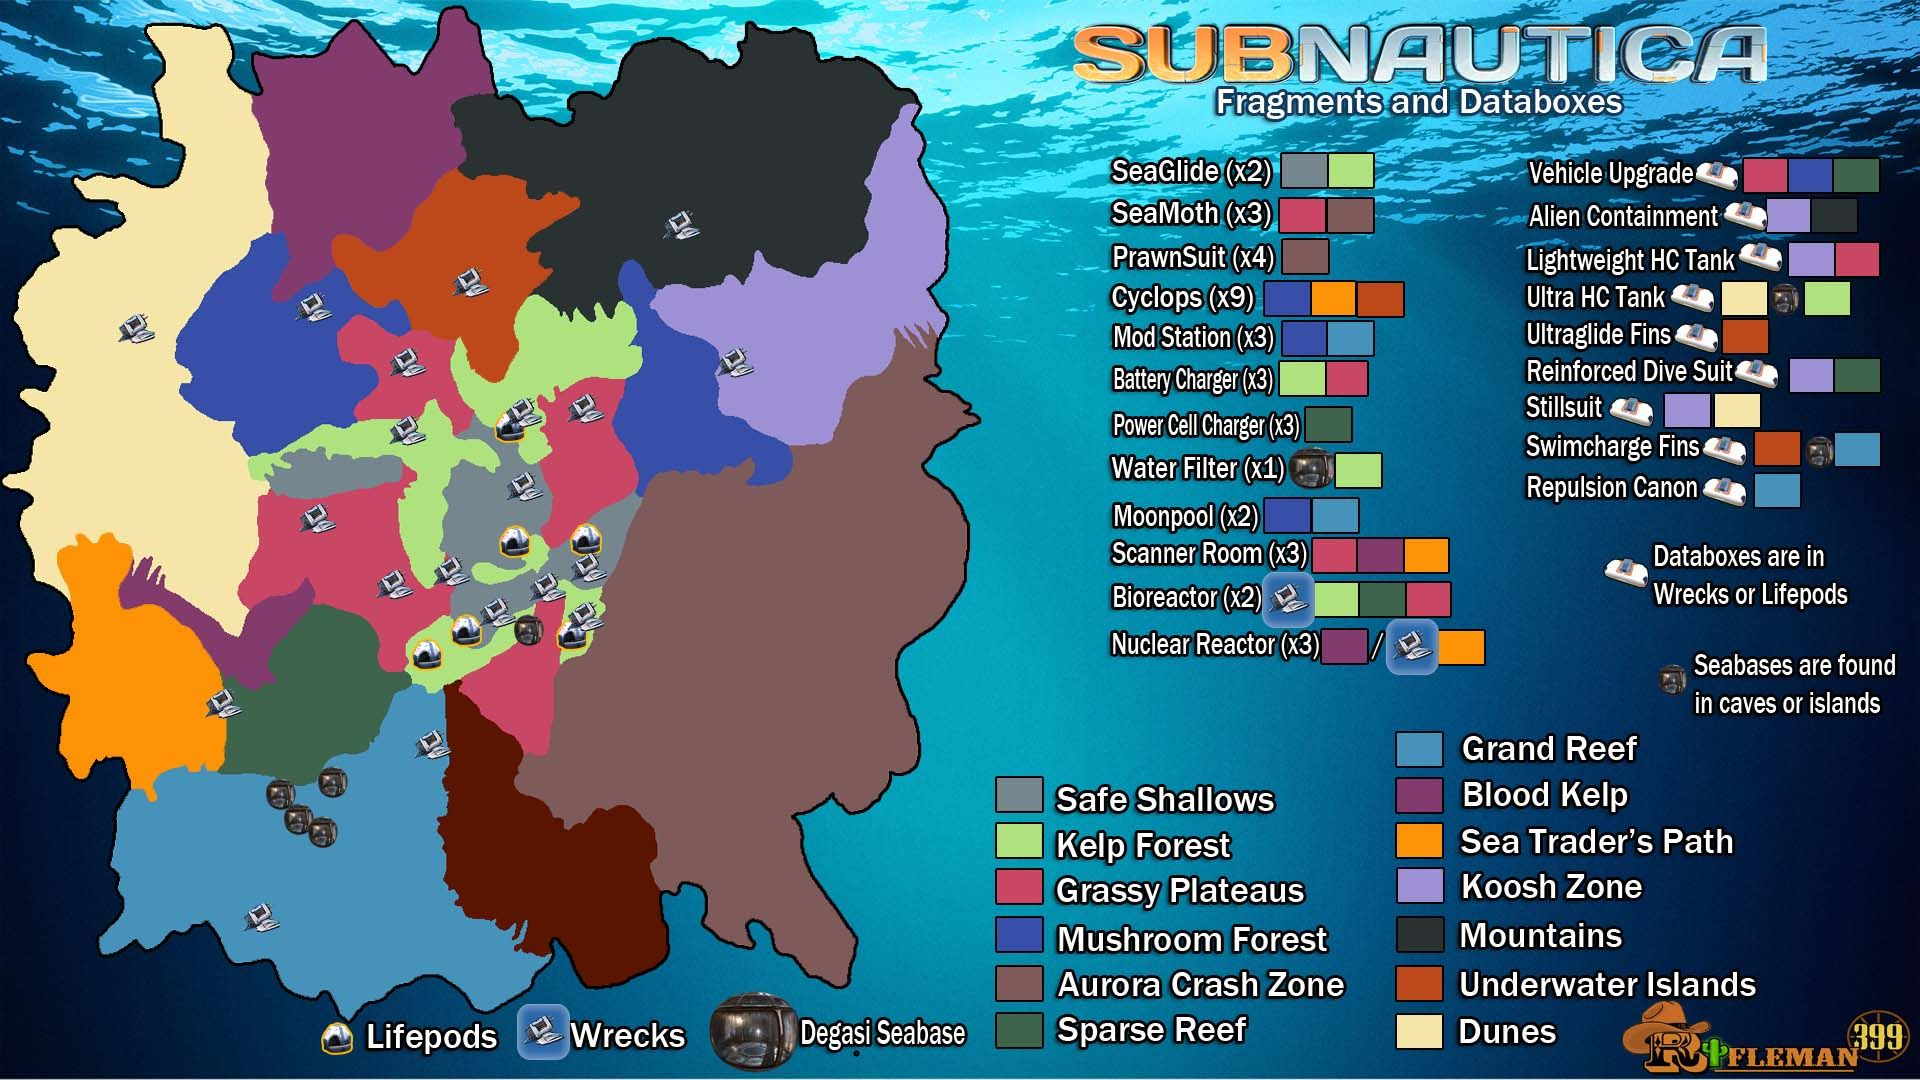 Subnautica Scanner Room Best Upgrades – Some hints to make a good start.